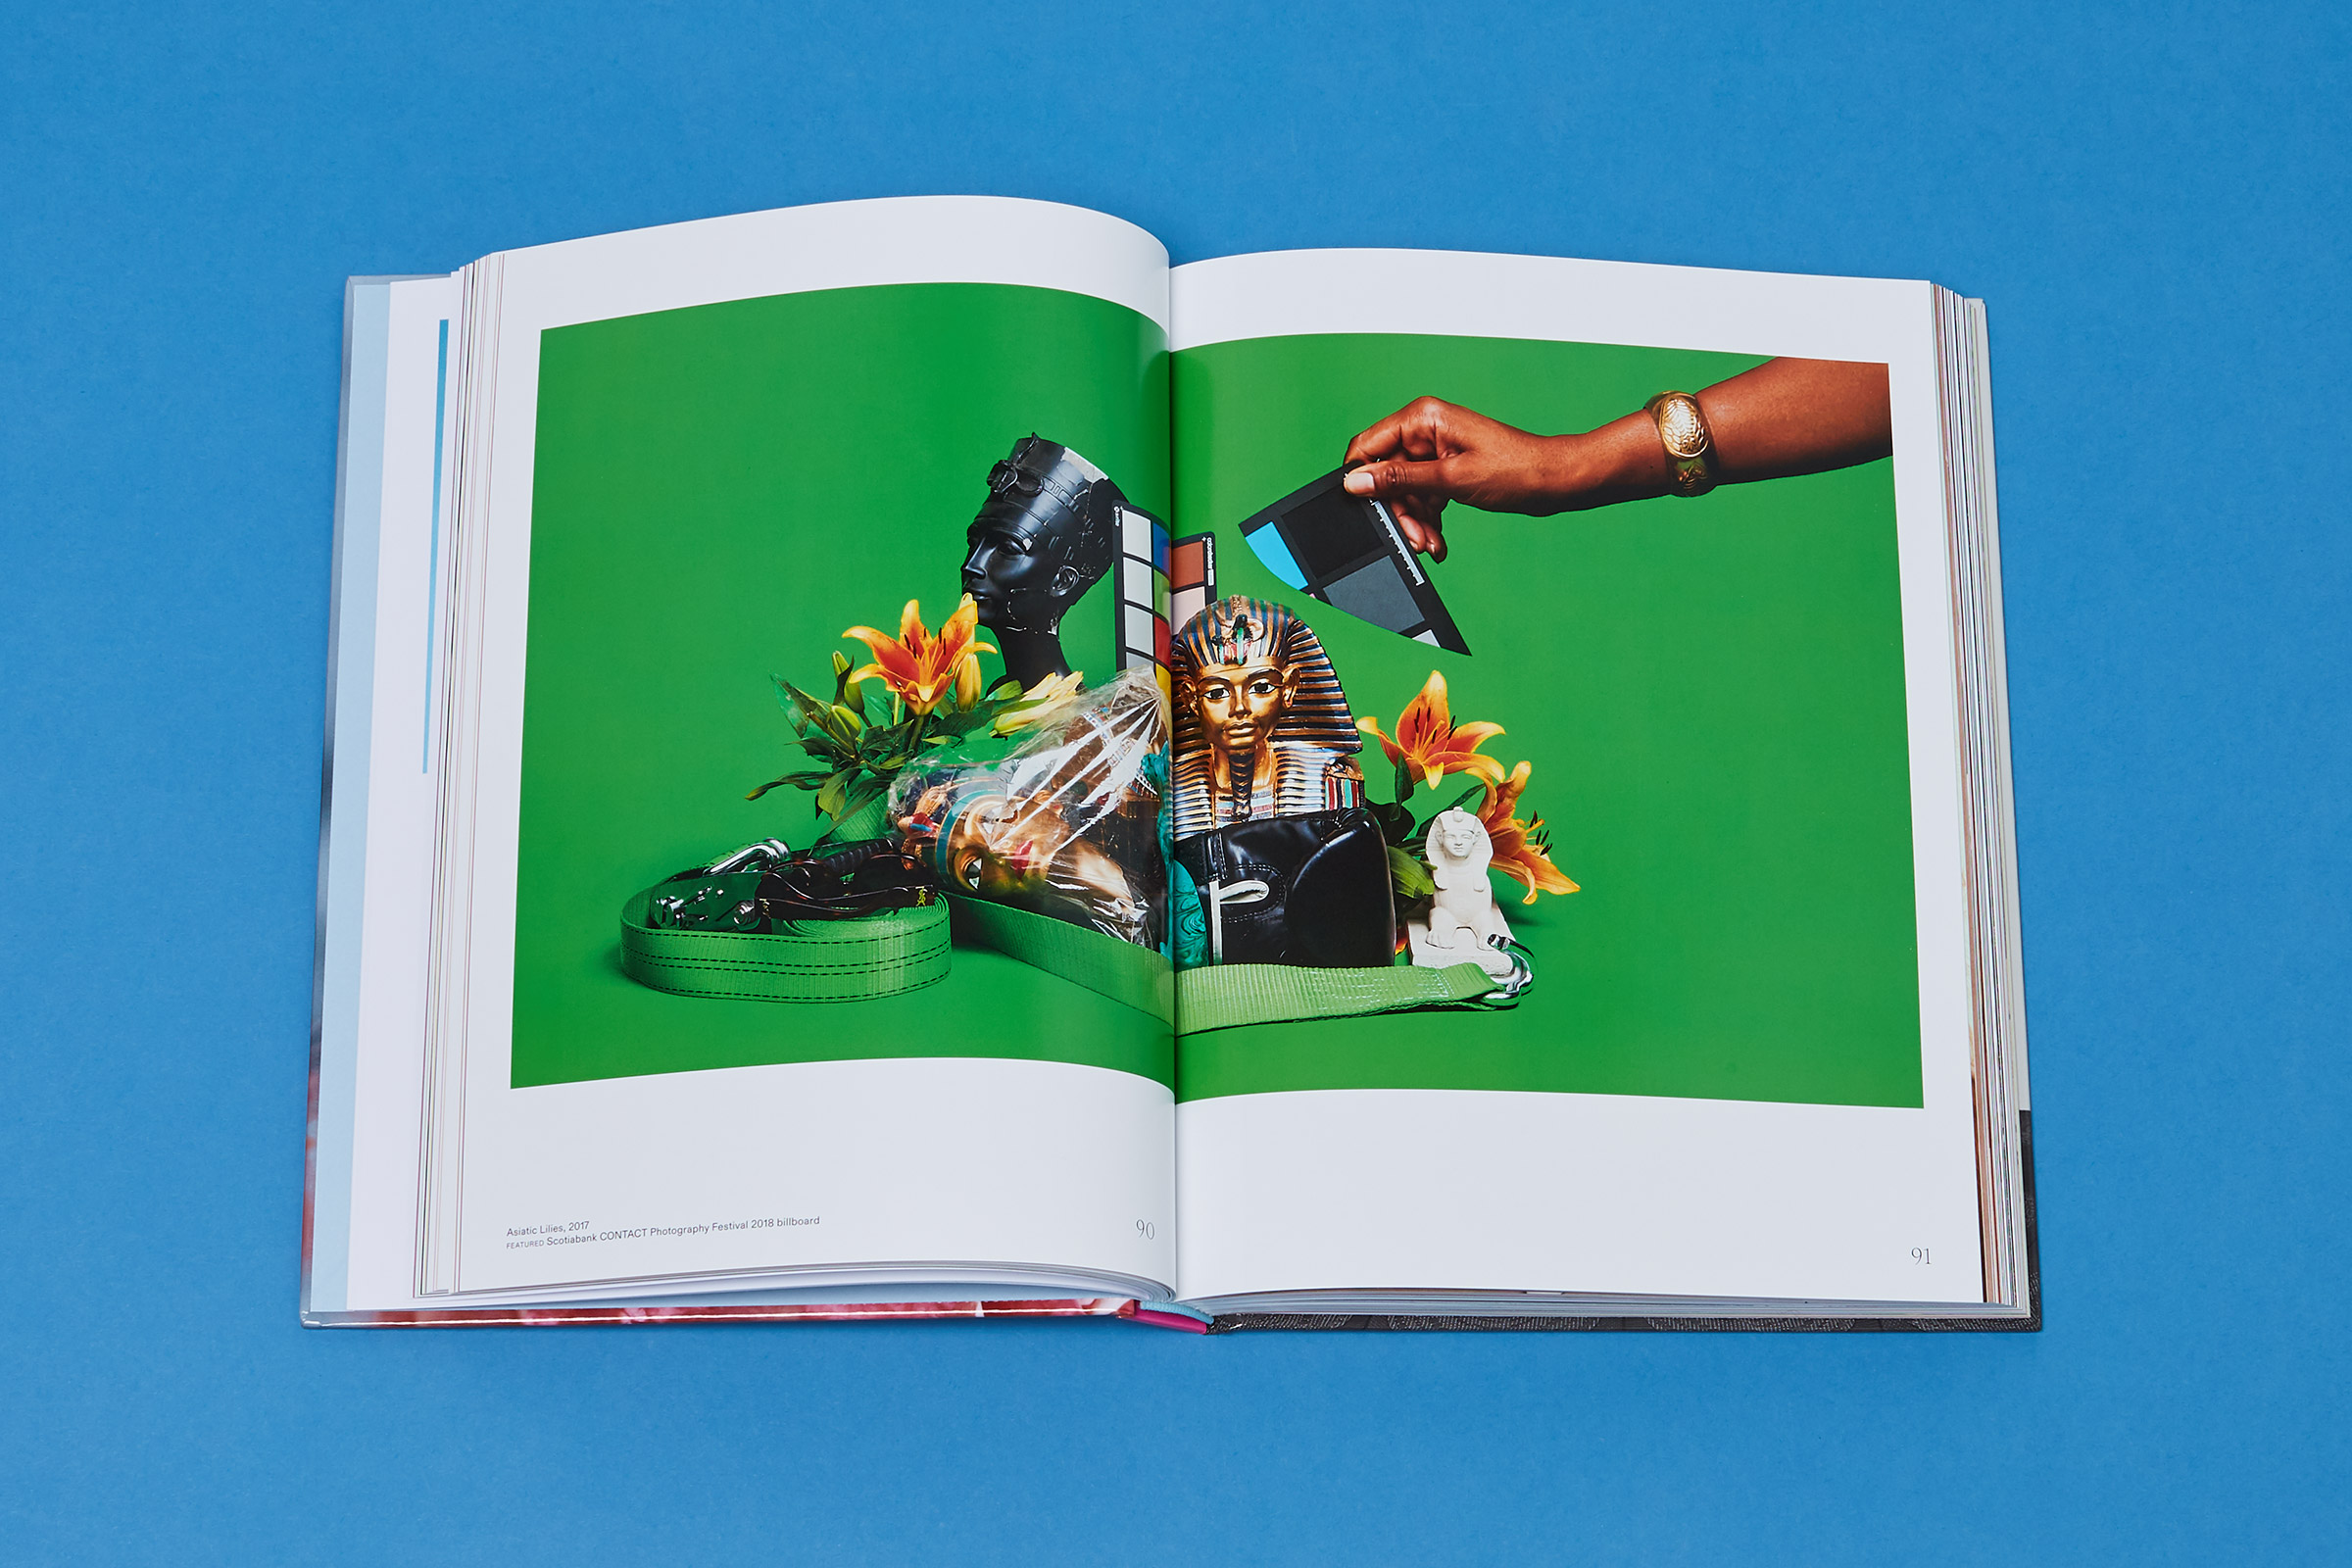 Photograph by Awol Erizku from The New Black Vanguard: Photography between Art and Fashion by Antwaun Sargent